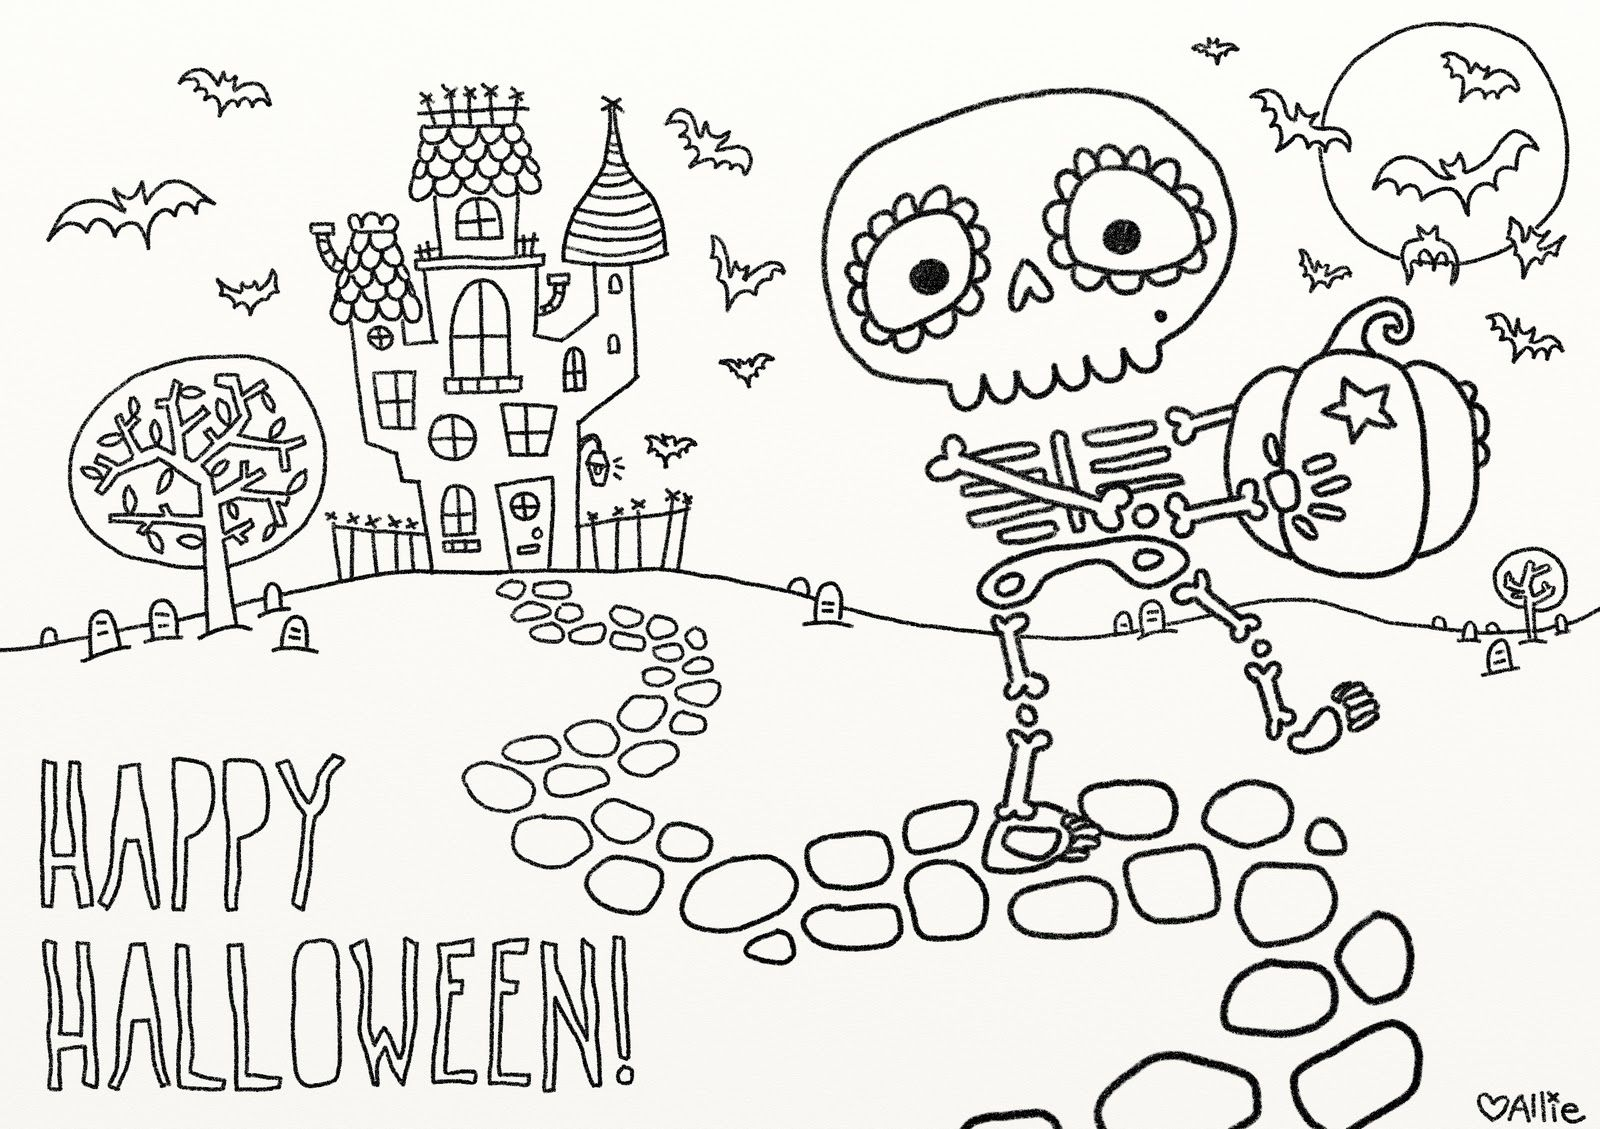 halloween coloring pages for older kids - coloring home - Fun Coloring Pages Older Kids